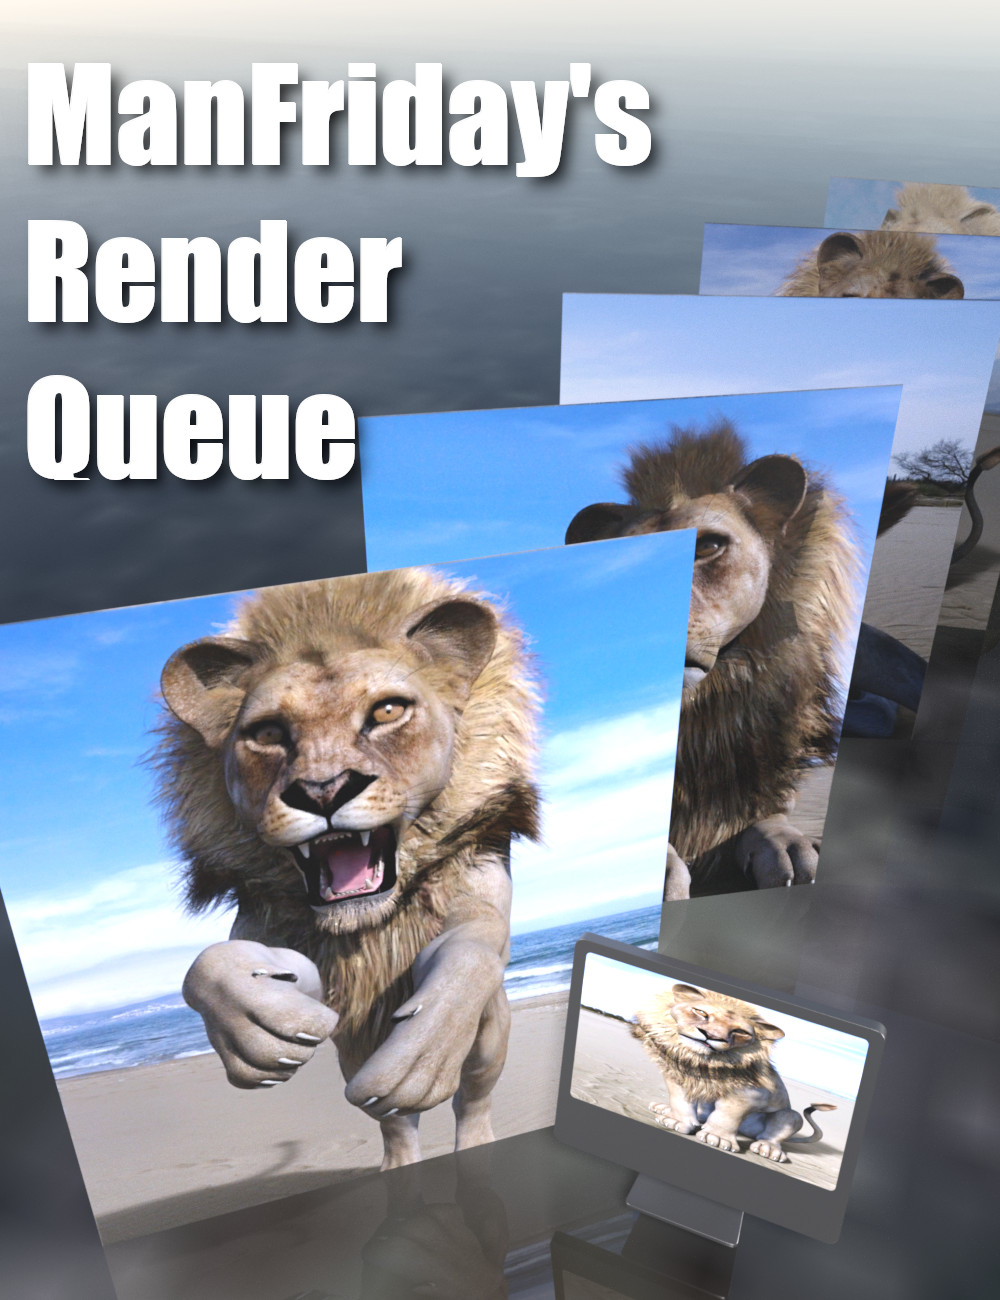 Render Queue by: ManFriday, 3D Models by Daz 3D